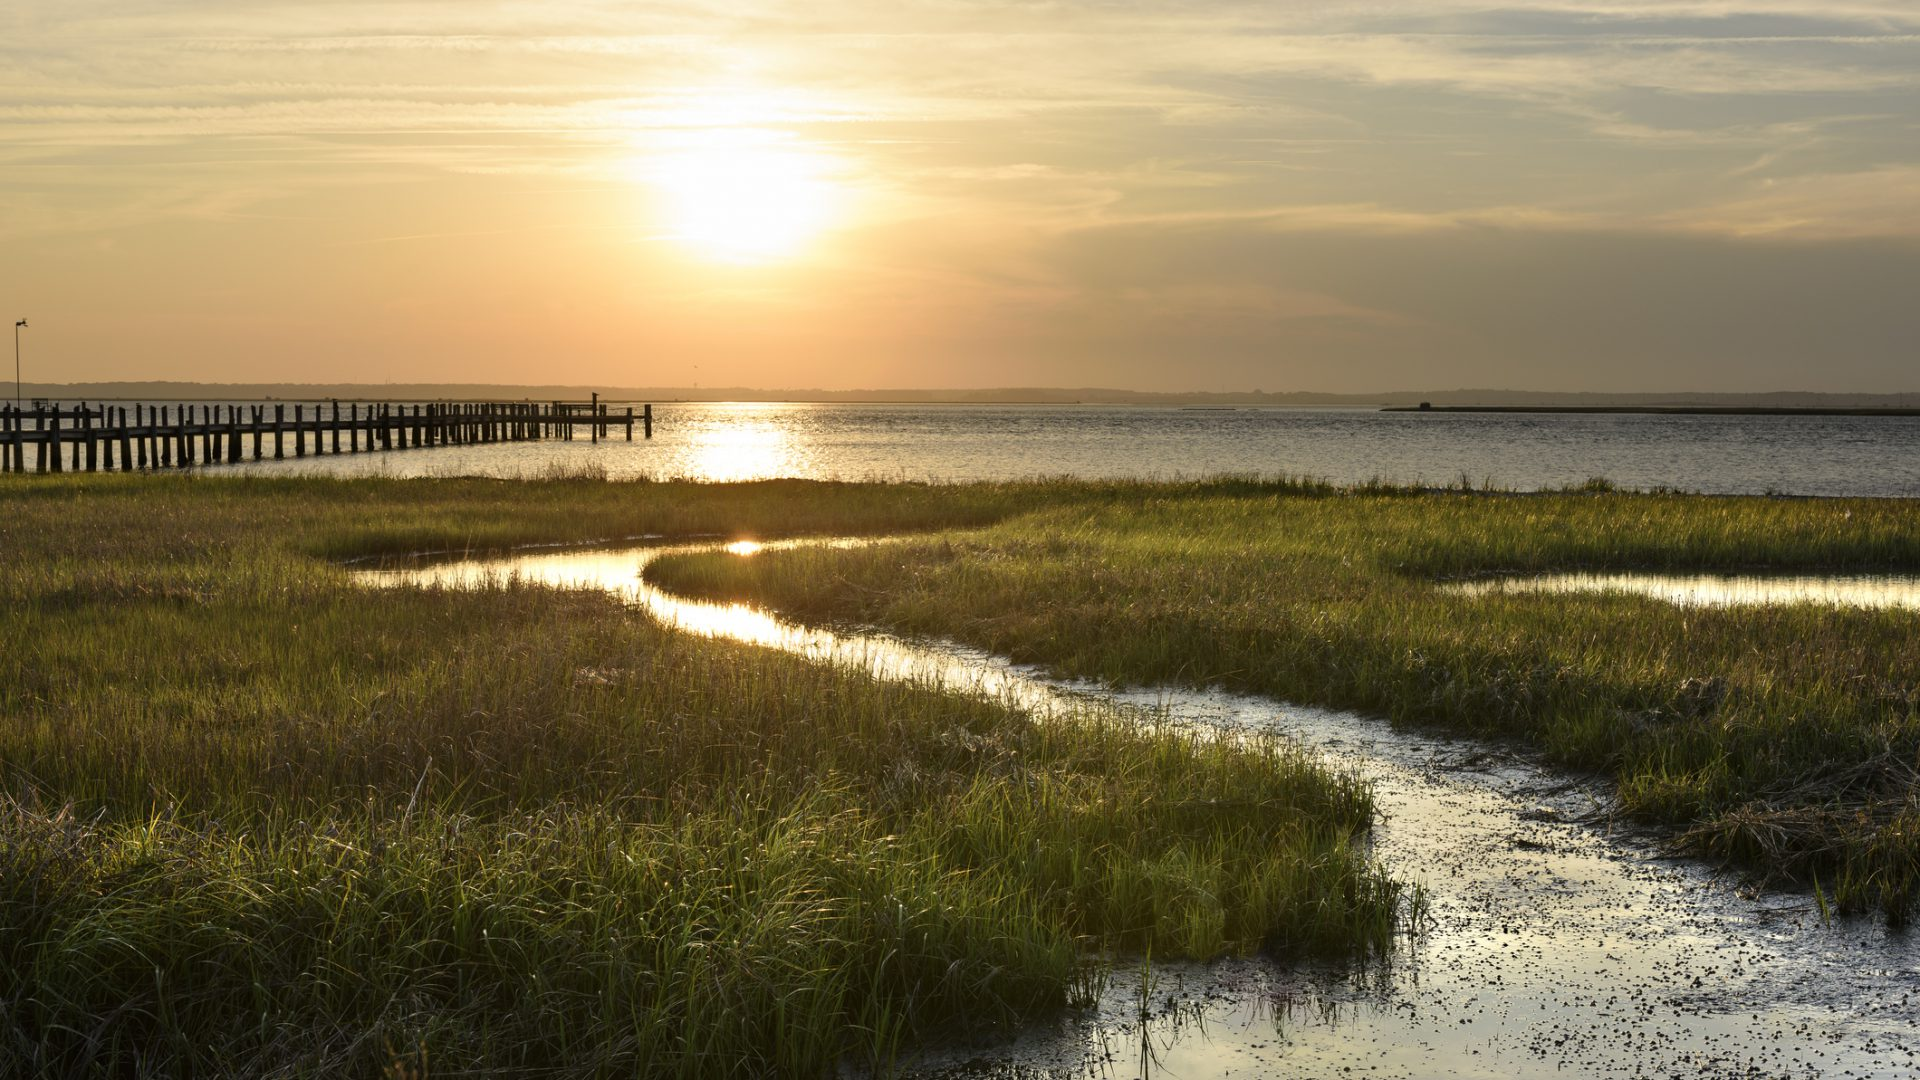 View of sunset over ocean inlet with green grasses and dock.